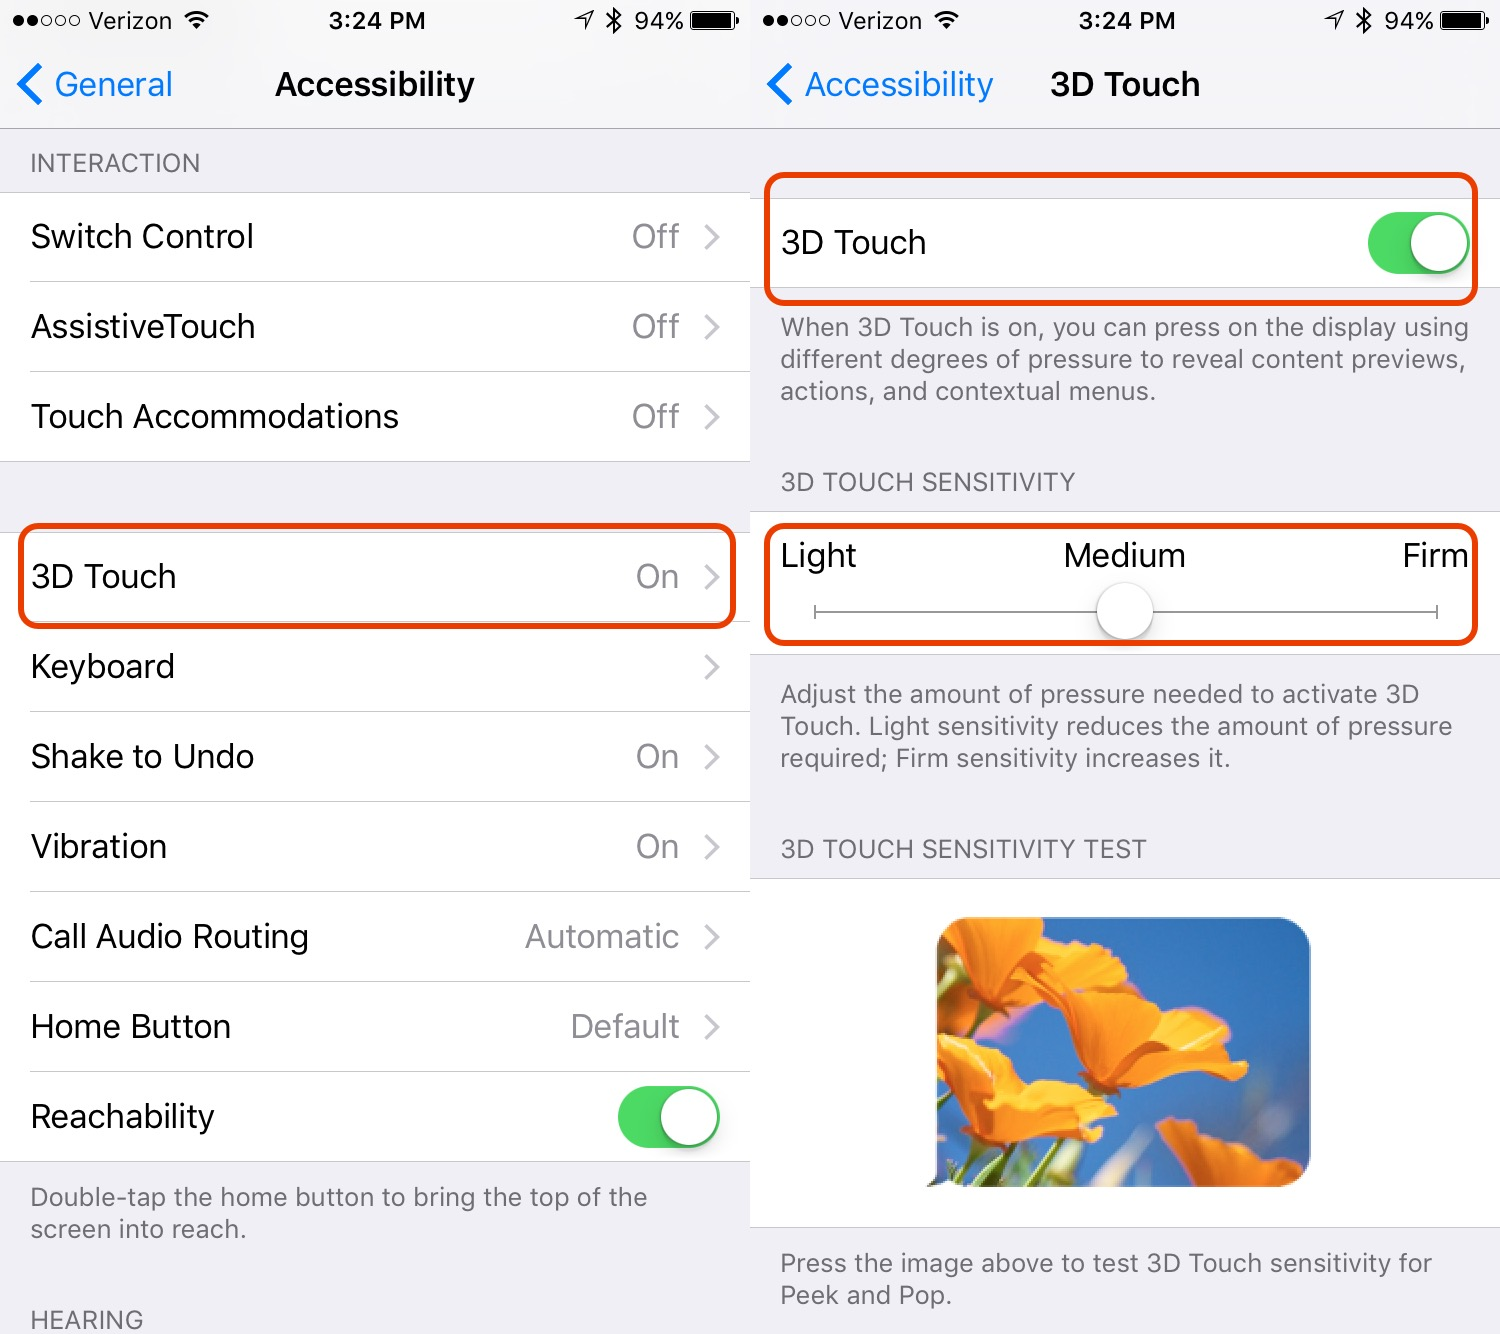 How To Use 3D Touch On IPhone 6s & IPhone 6s Plus